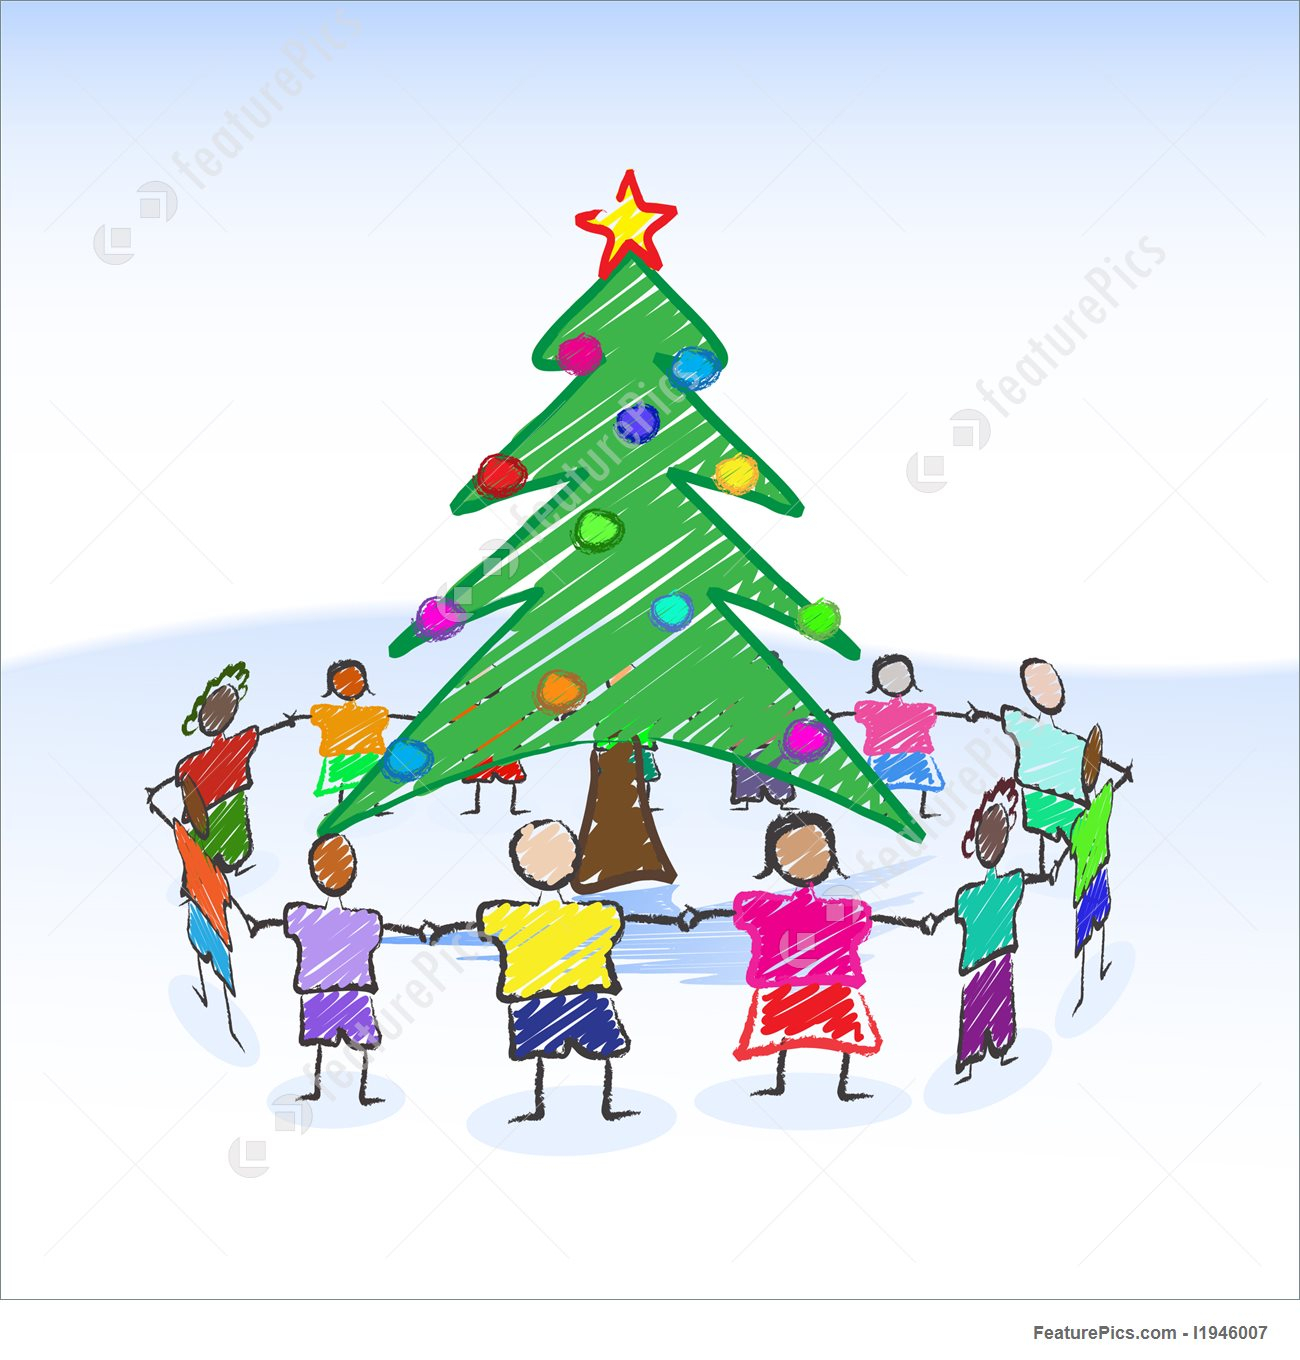 Christmas Drawing For Children at GetDrawings.com | Free for ...